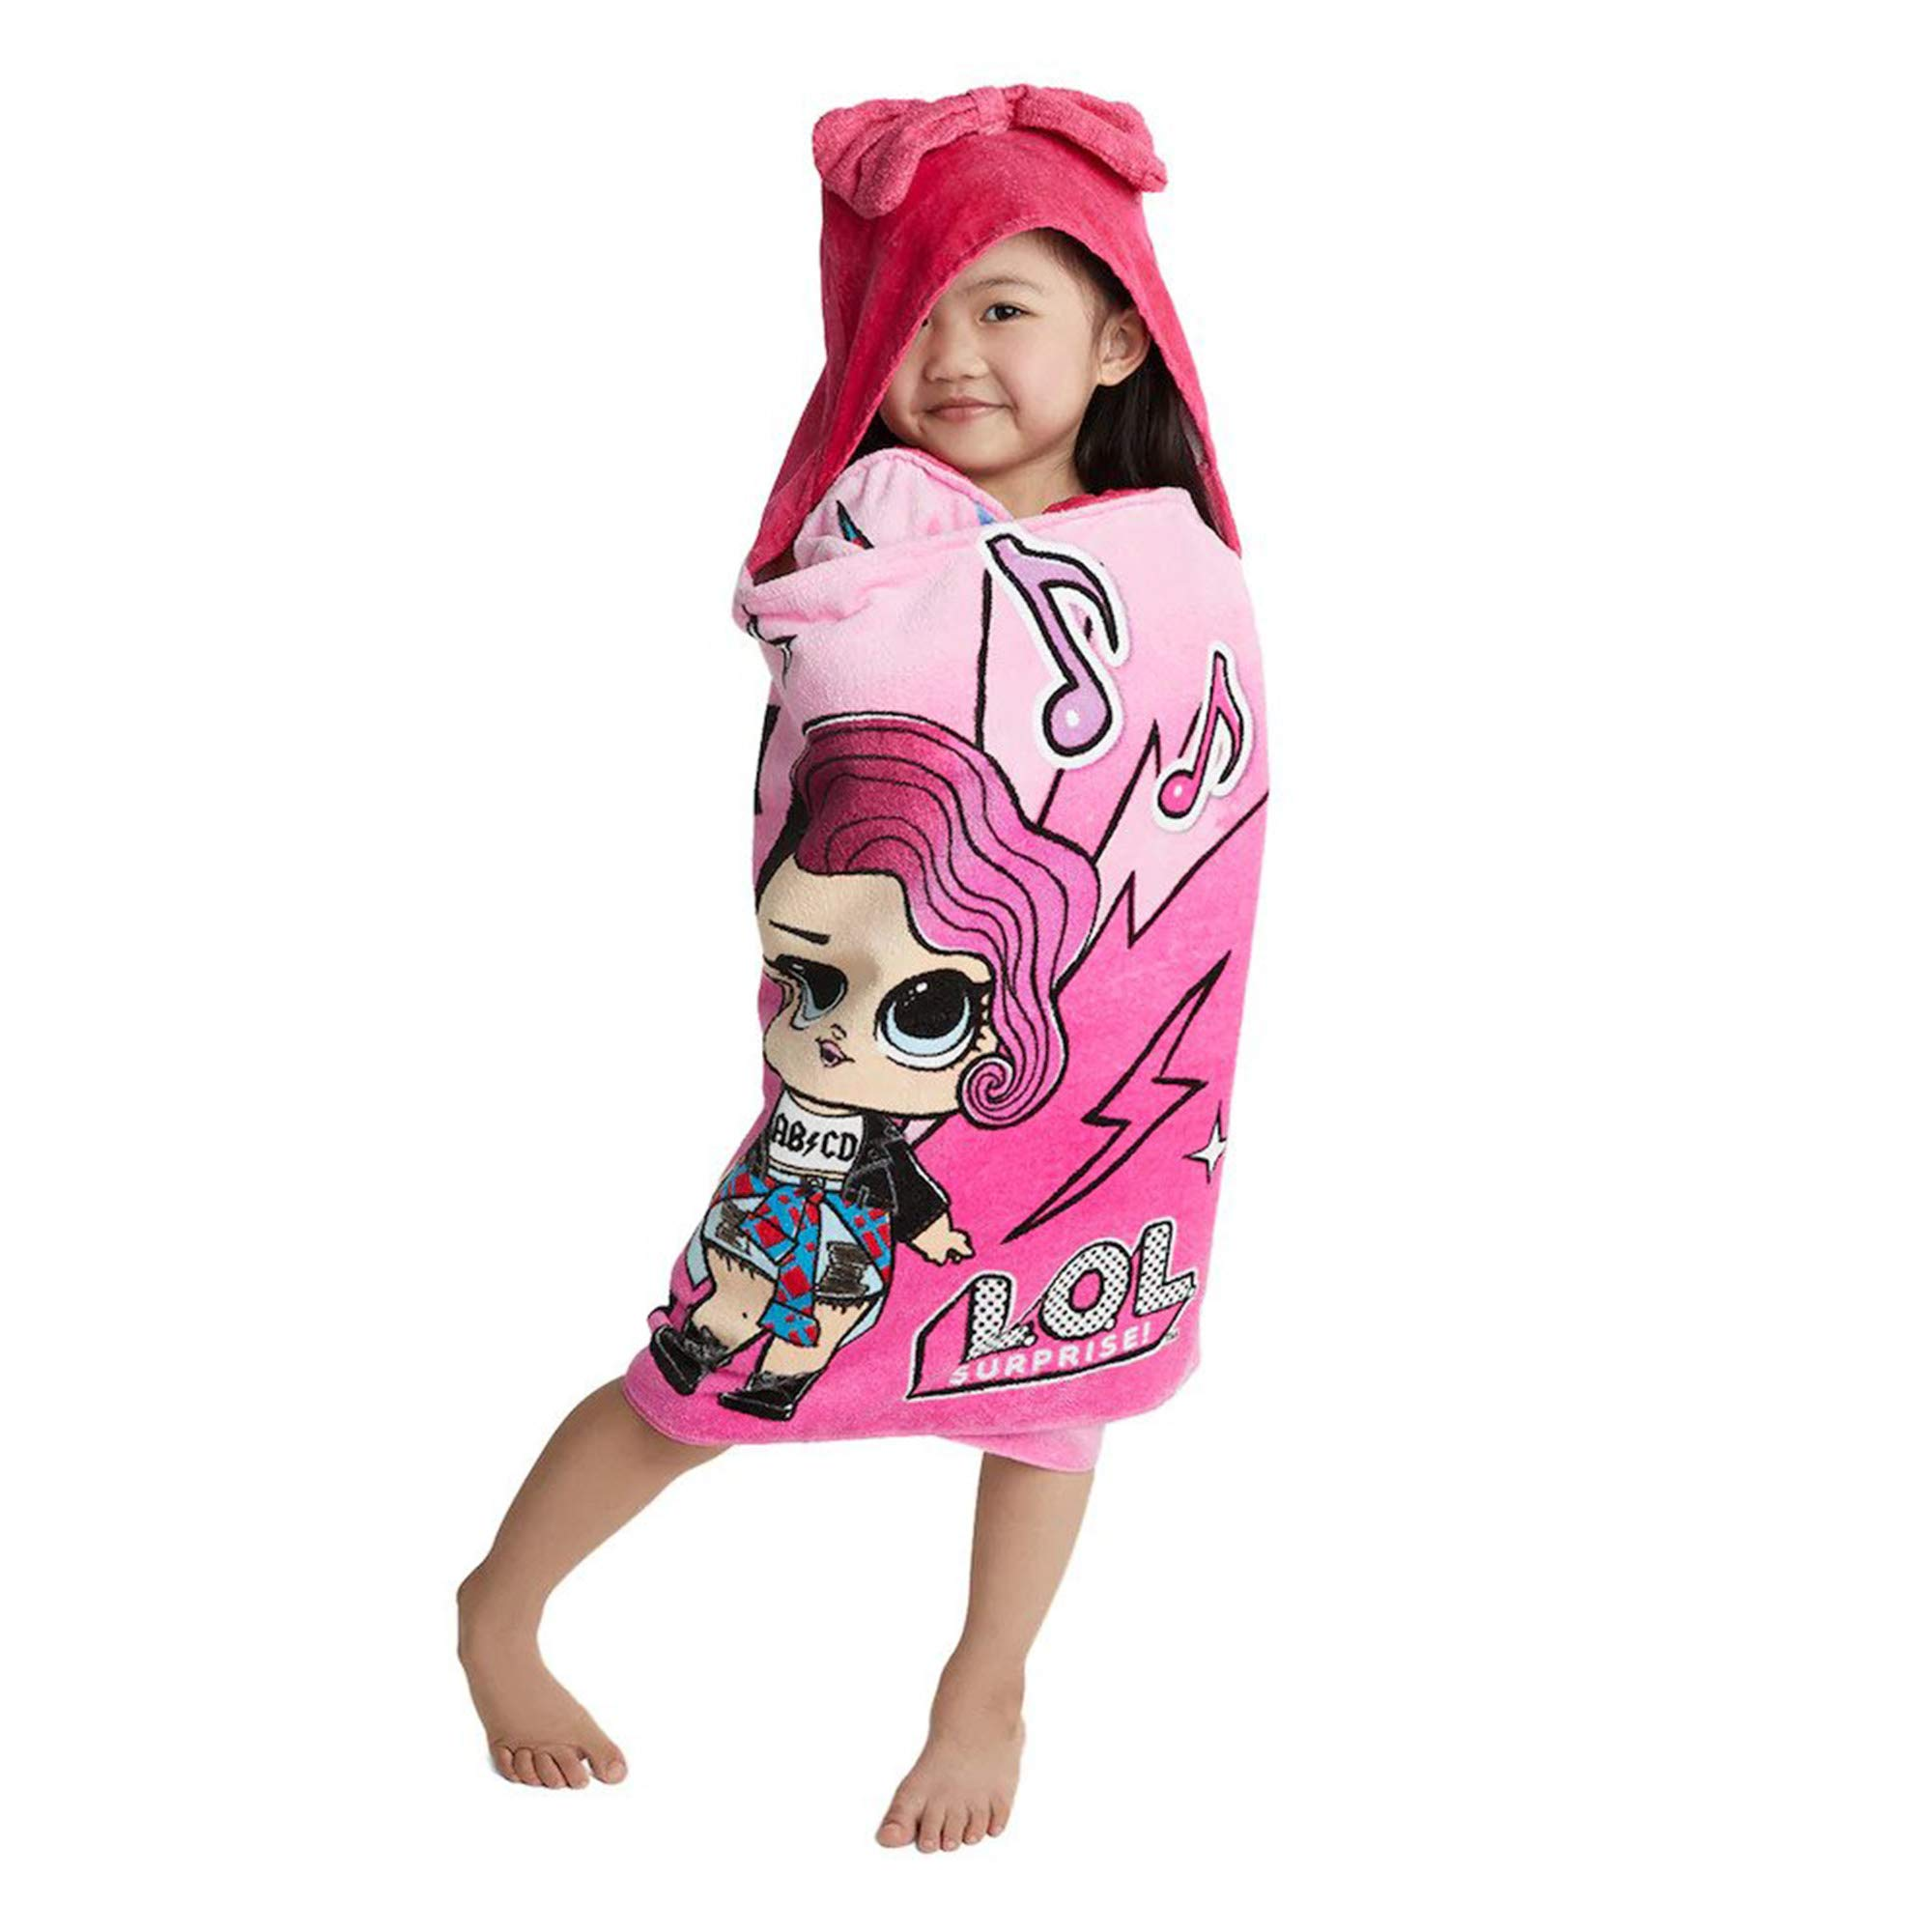 "L.O.L. 서프라이즈 후드 타올 L.O.L. Surprise! Soft Cotton Hooded Bath Towel Wrap 24"" x 50"" Pink"